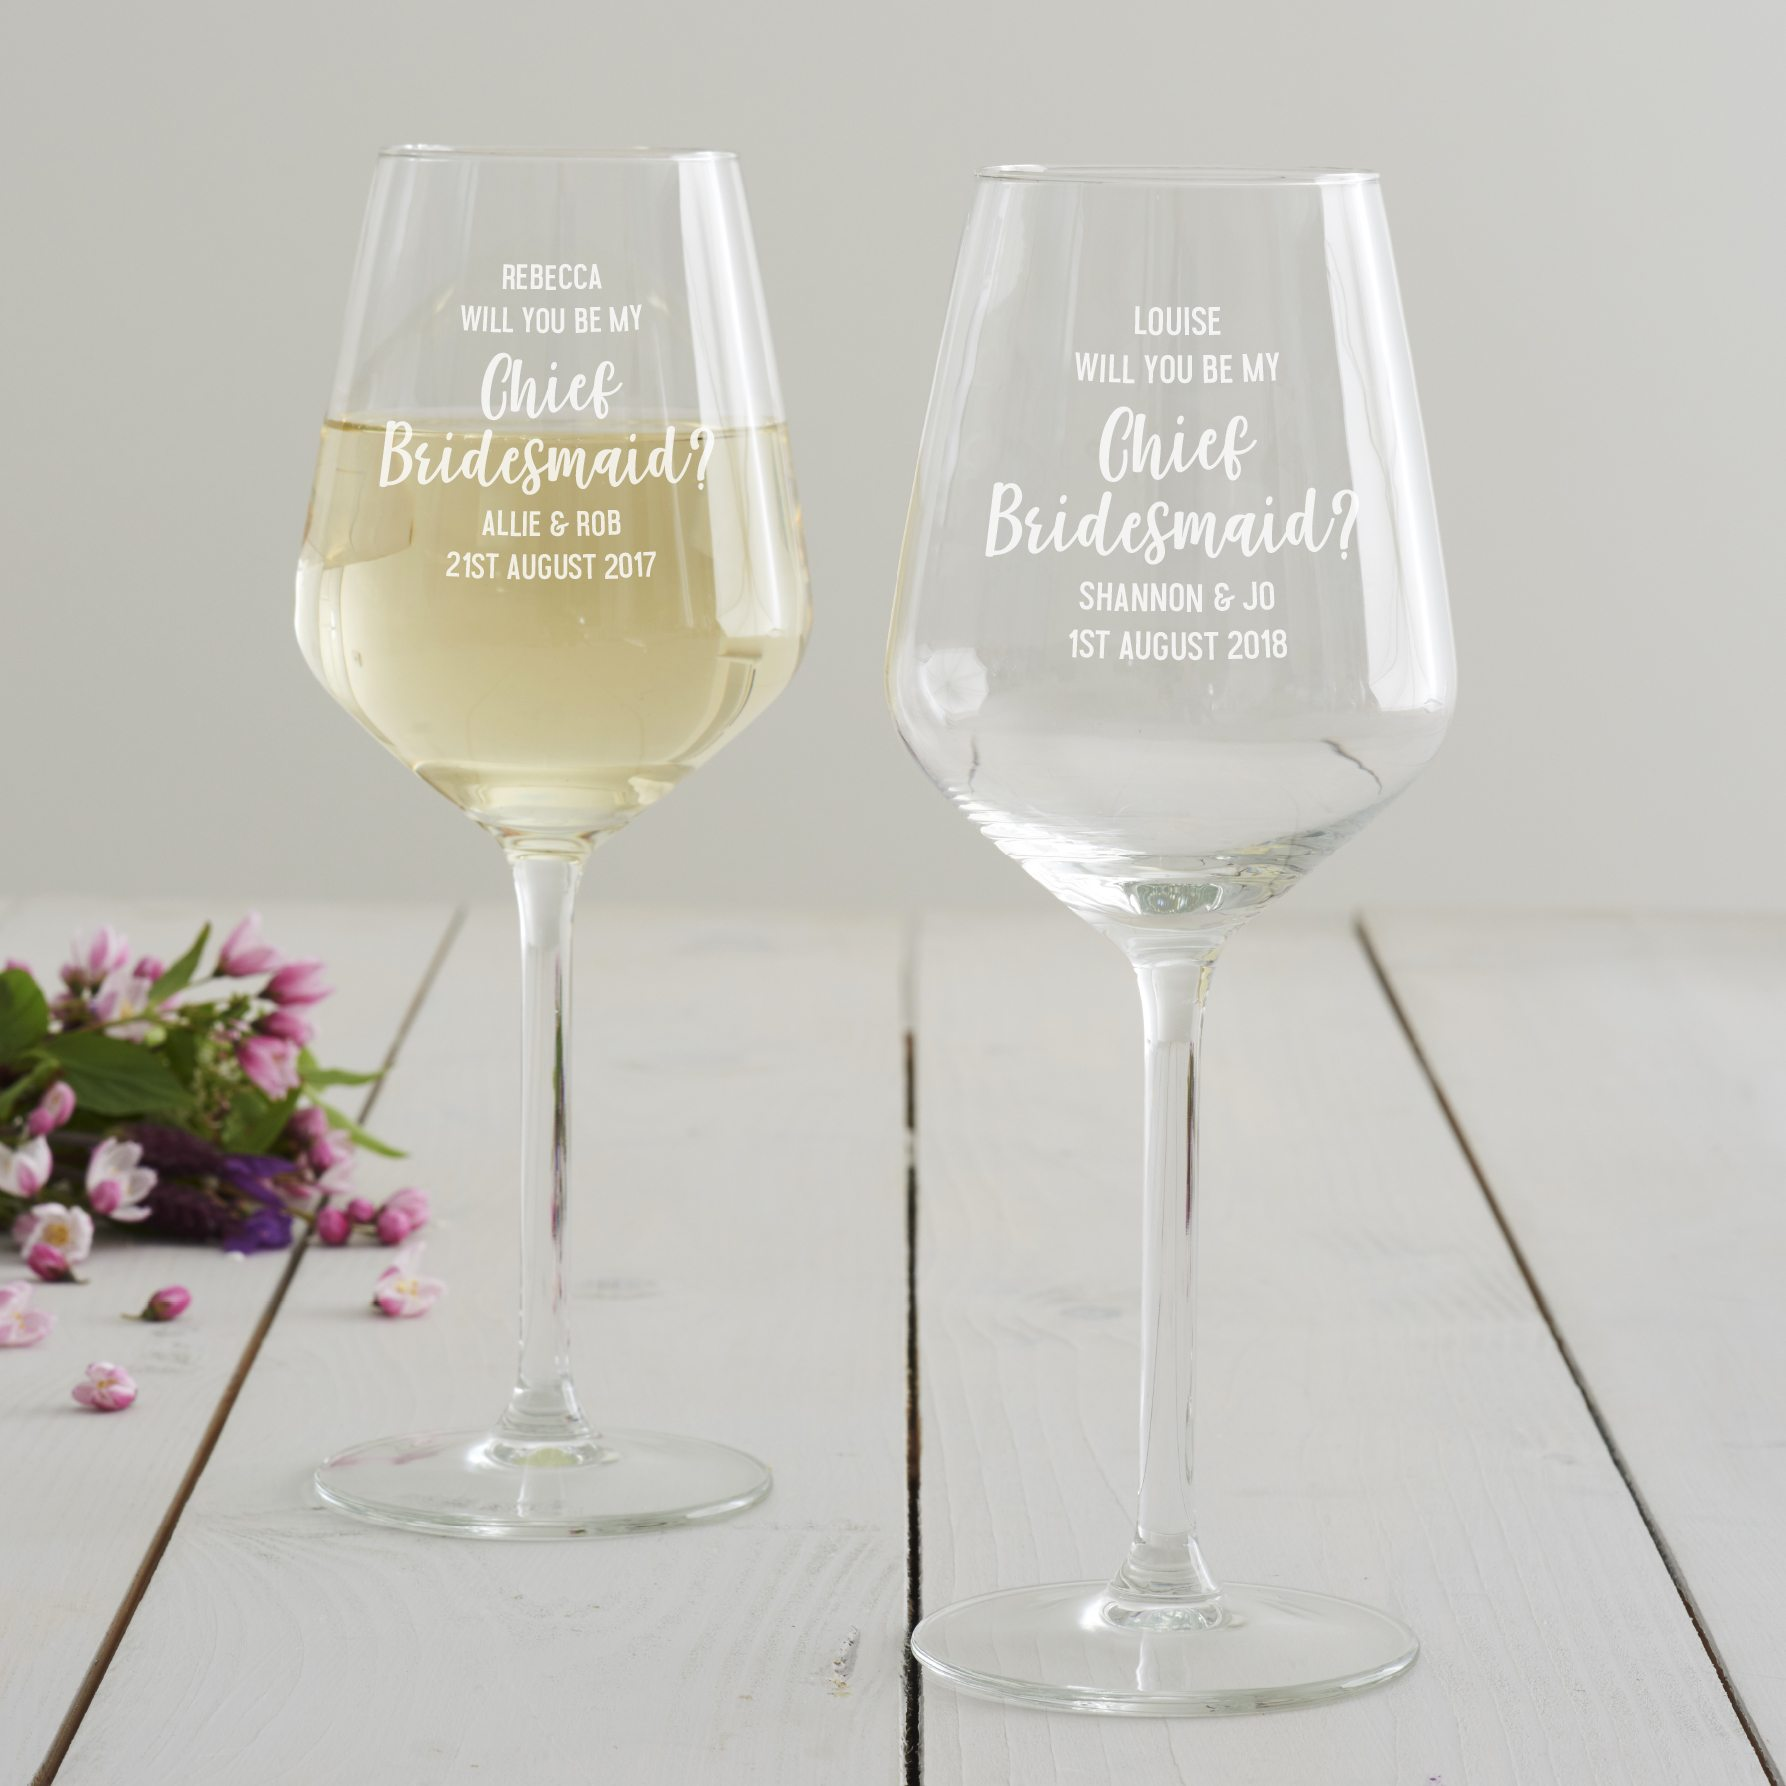 Personalised 'Will You Be My Chief Bridesmaid' Wine Glass